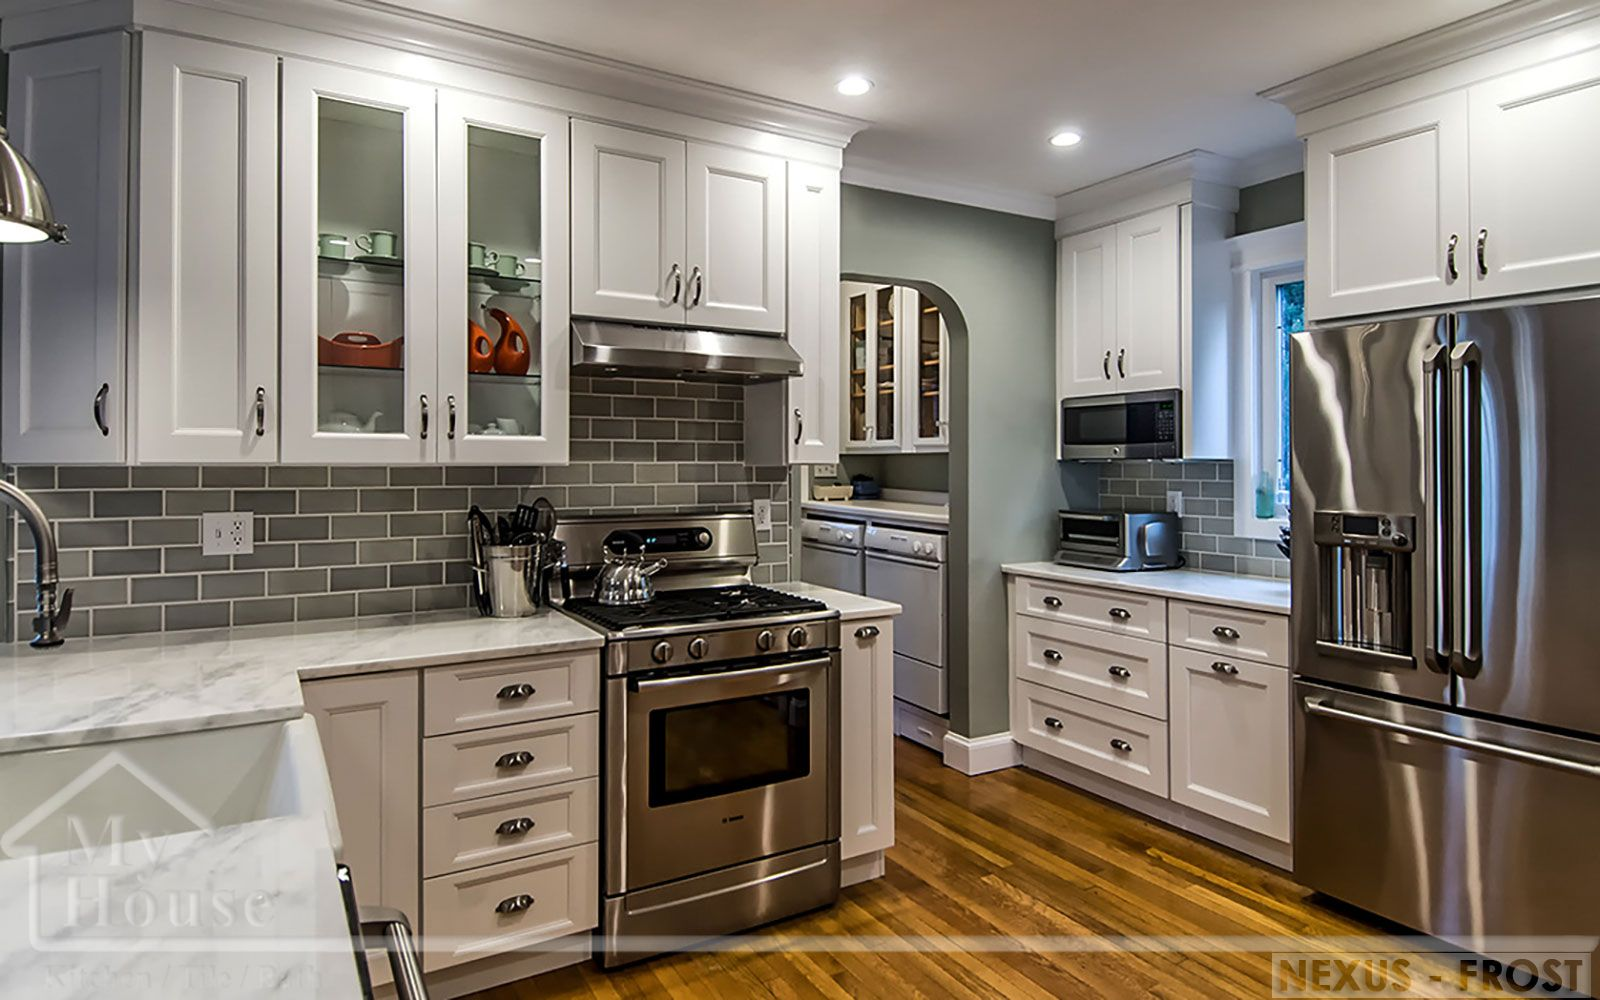 Kitchen cabinets long valley nj - Wellington Spice Traditionalkitchen Kitchenremodeling Ctkitchenremodeling Randdconcepts R Dconcepts Traditional Kitchen Cabinets Designs Pinterest